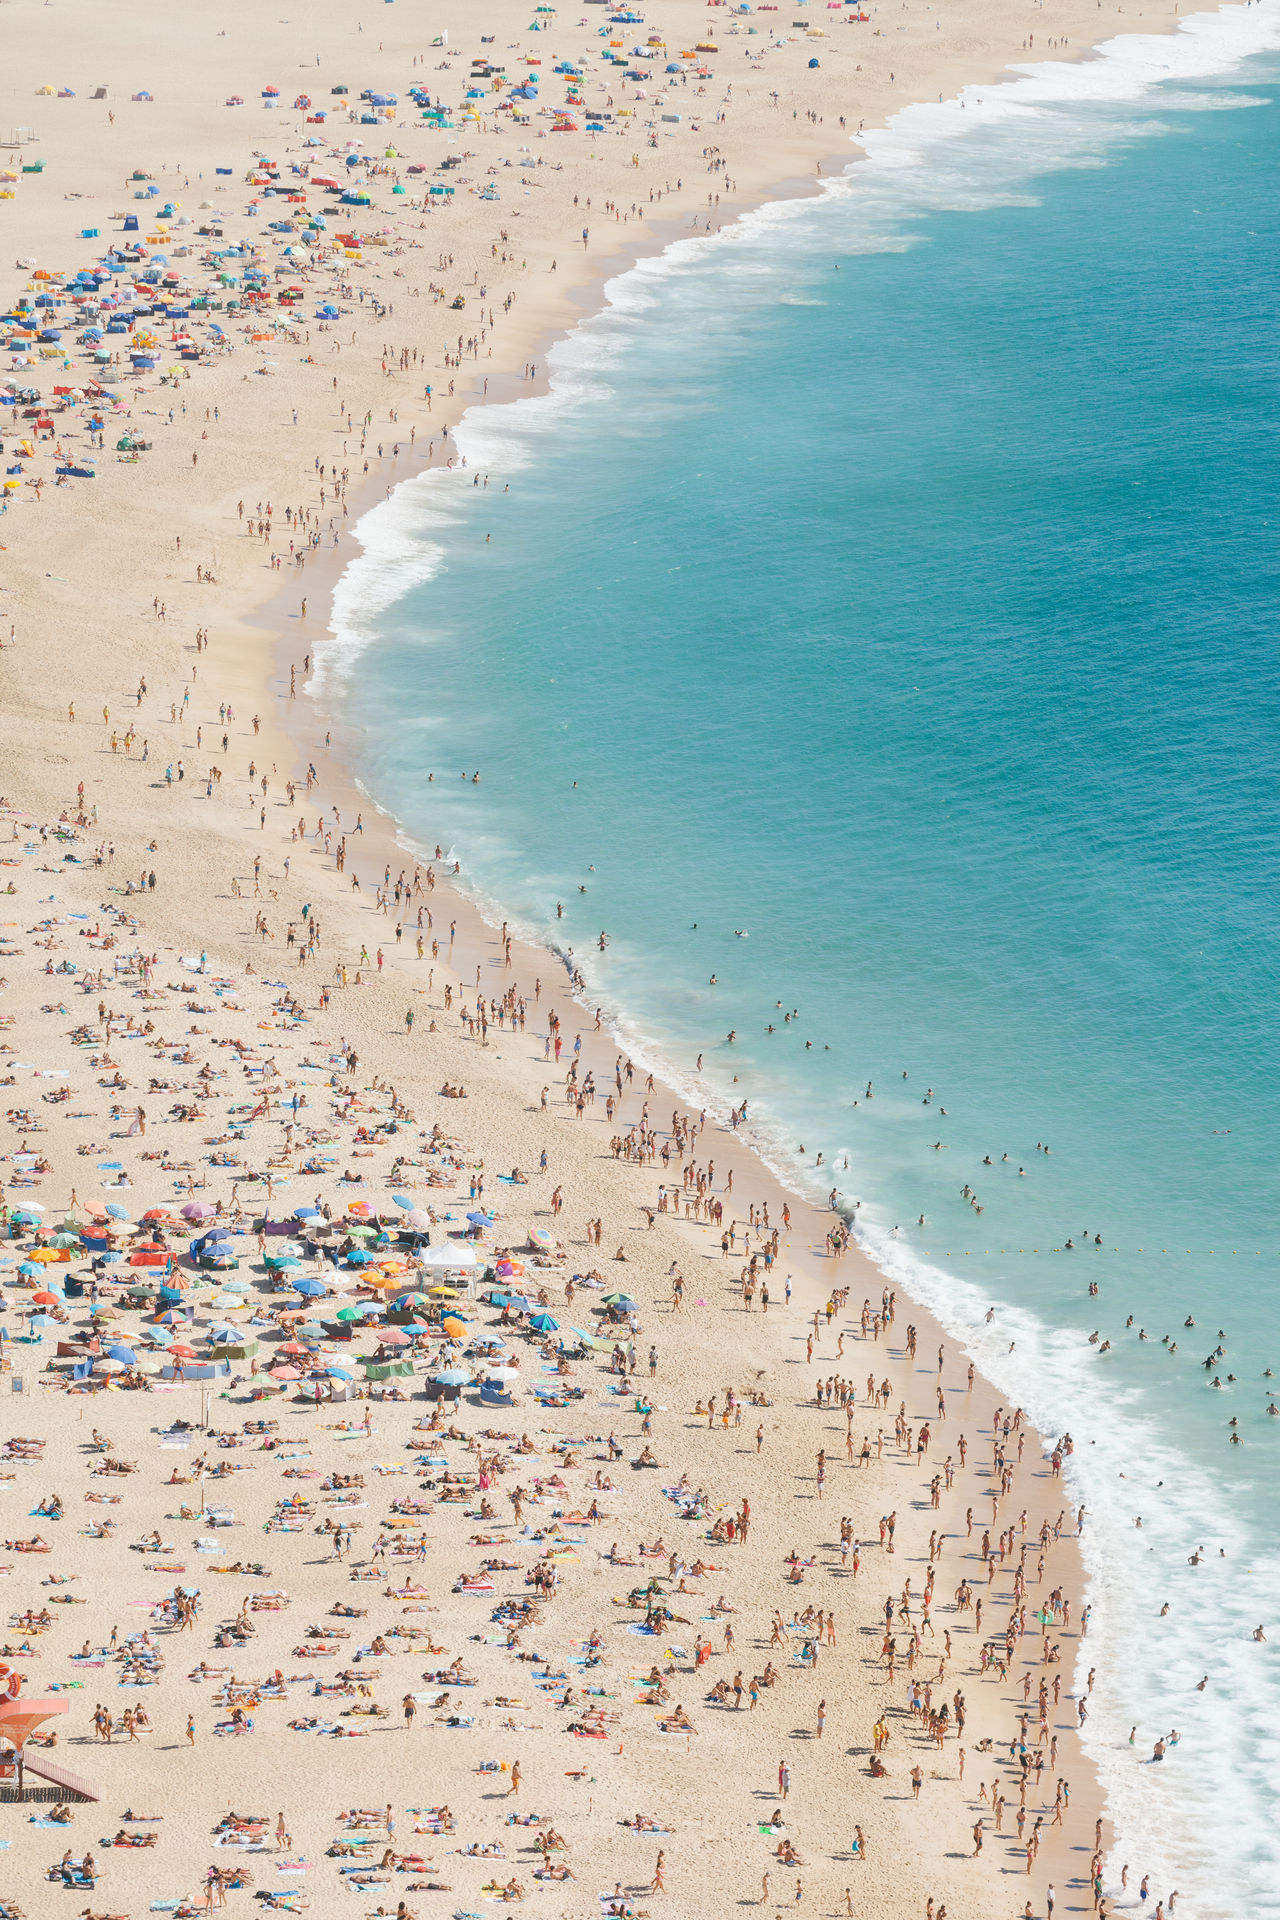 A Bird's Eye View beach beach holiday blue Calm City Coastline crowd crowded day enjoyment high angle view large group of people sand scenics sea shore summer tourism Tourist tranquil scene Tranquility travel destinations Vacations water